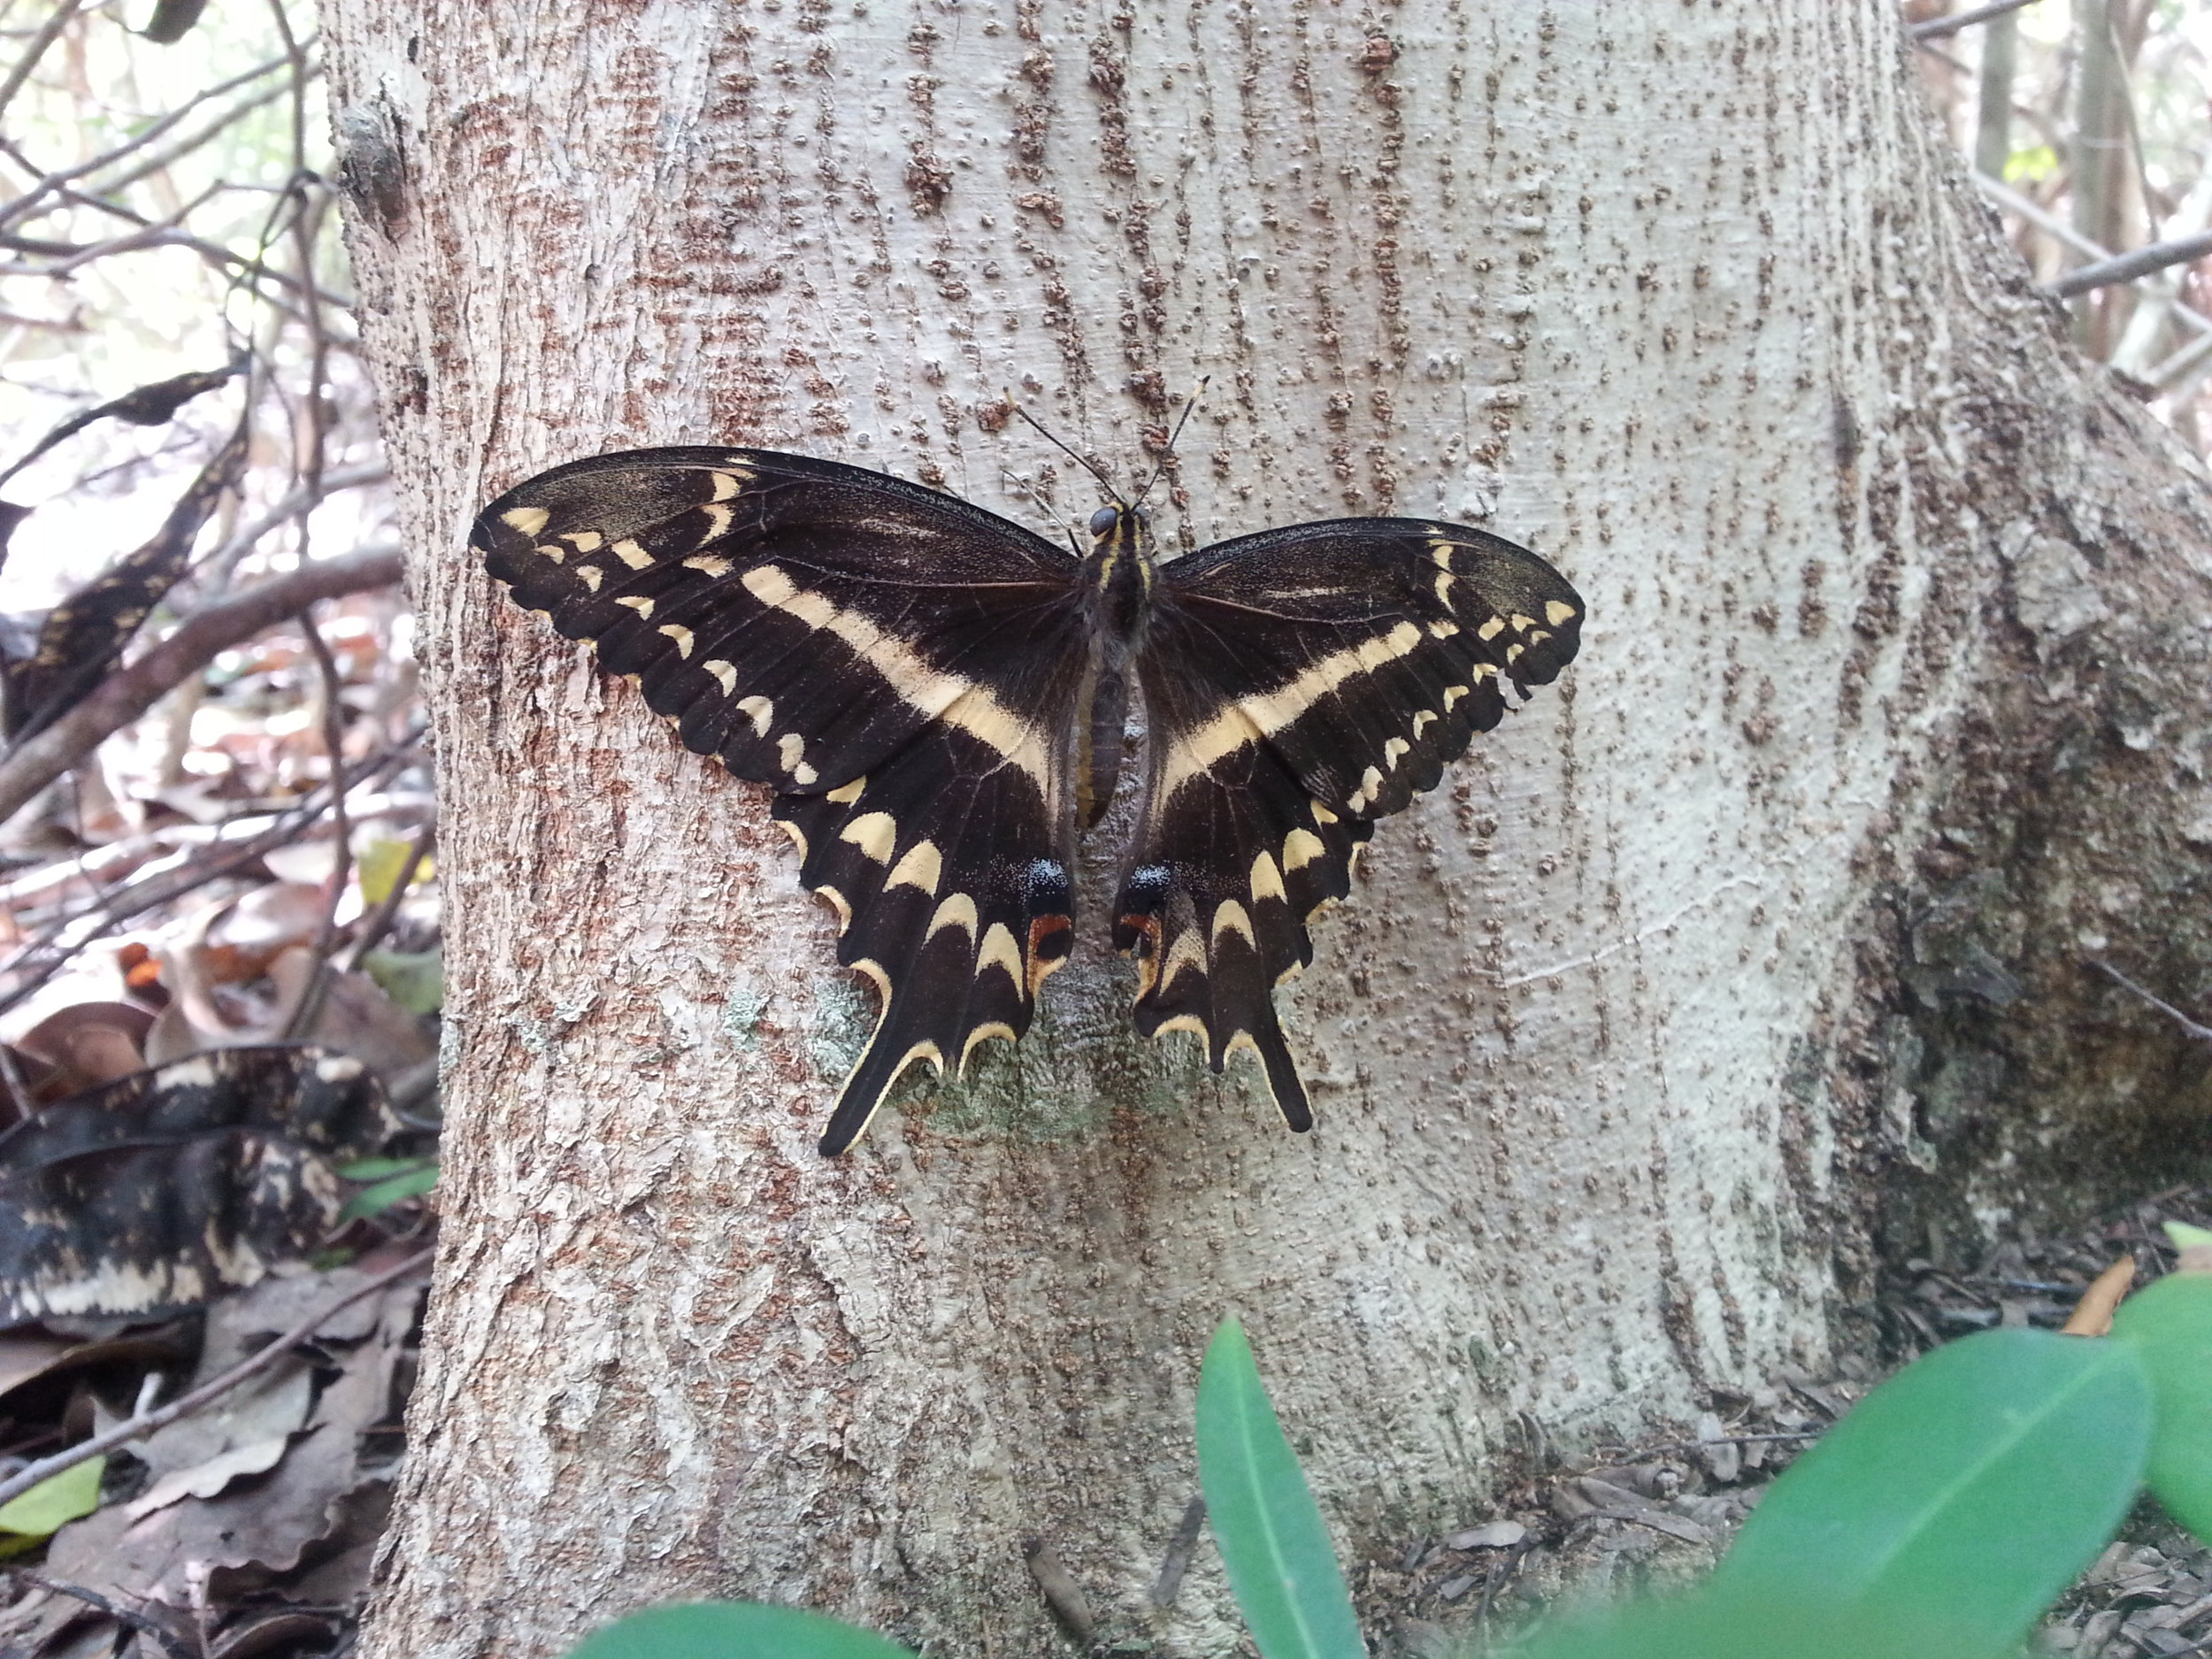 The federally endangered Schaus's swallowtail butterfly (Heraclides aristodemus ponceanus) is a univoltine (maybe) species that inhabits subtropical dry forest in the Florida Keys.